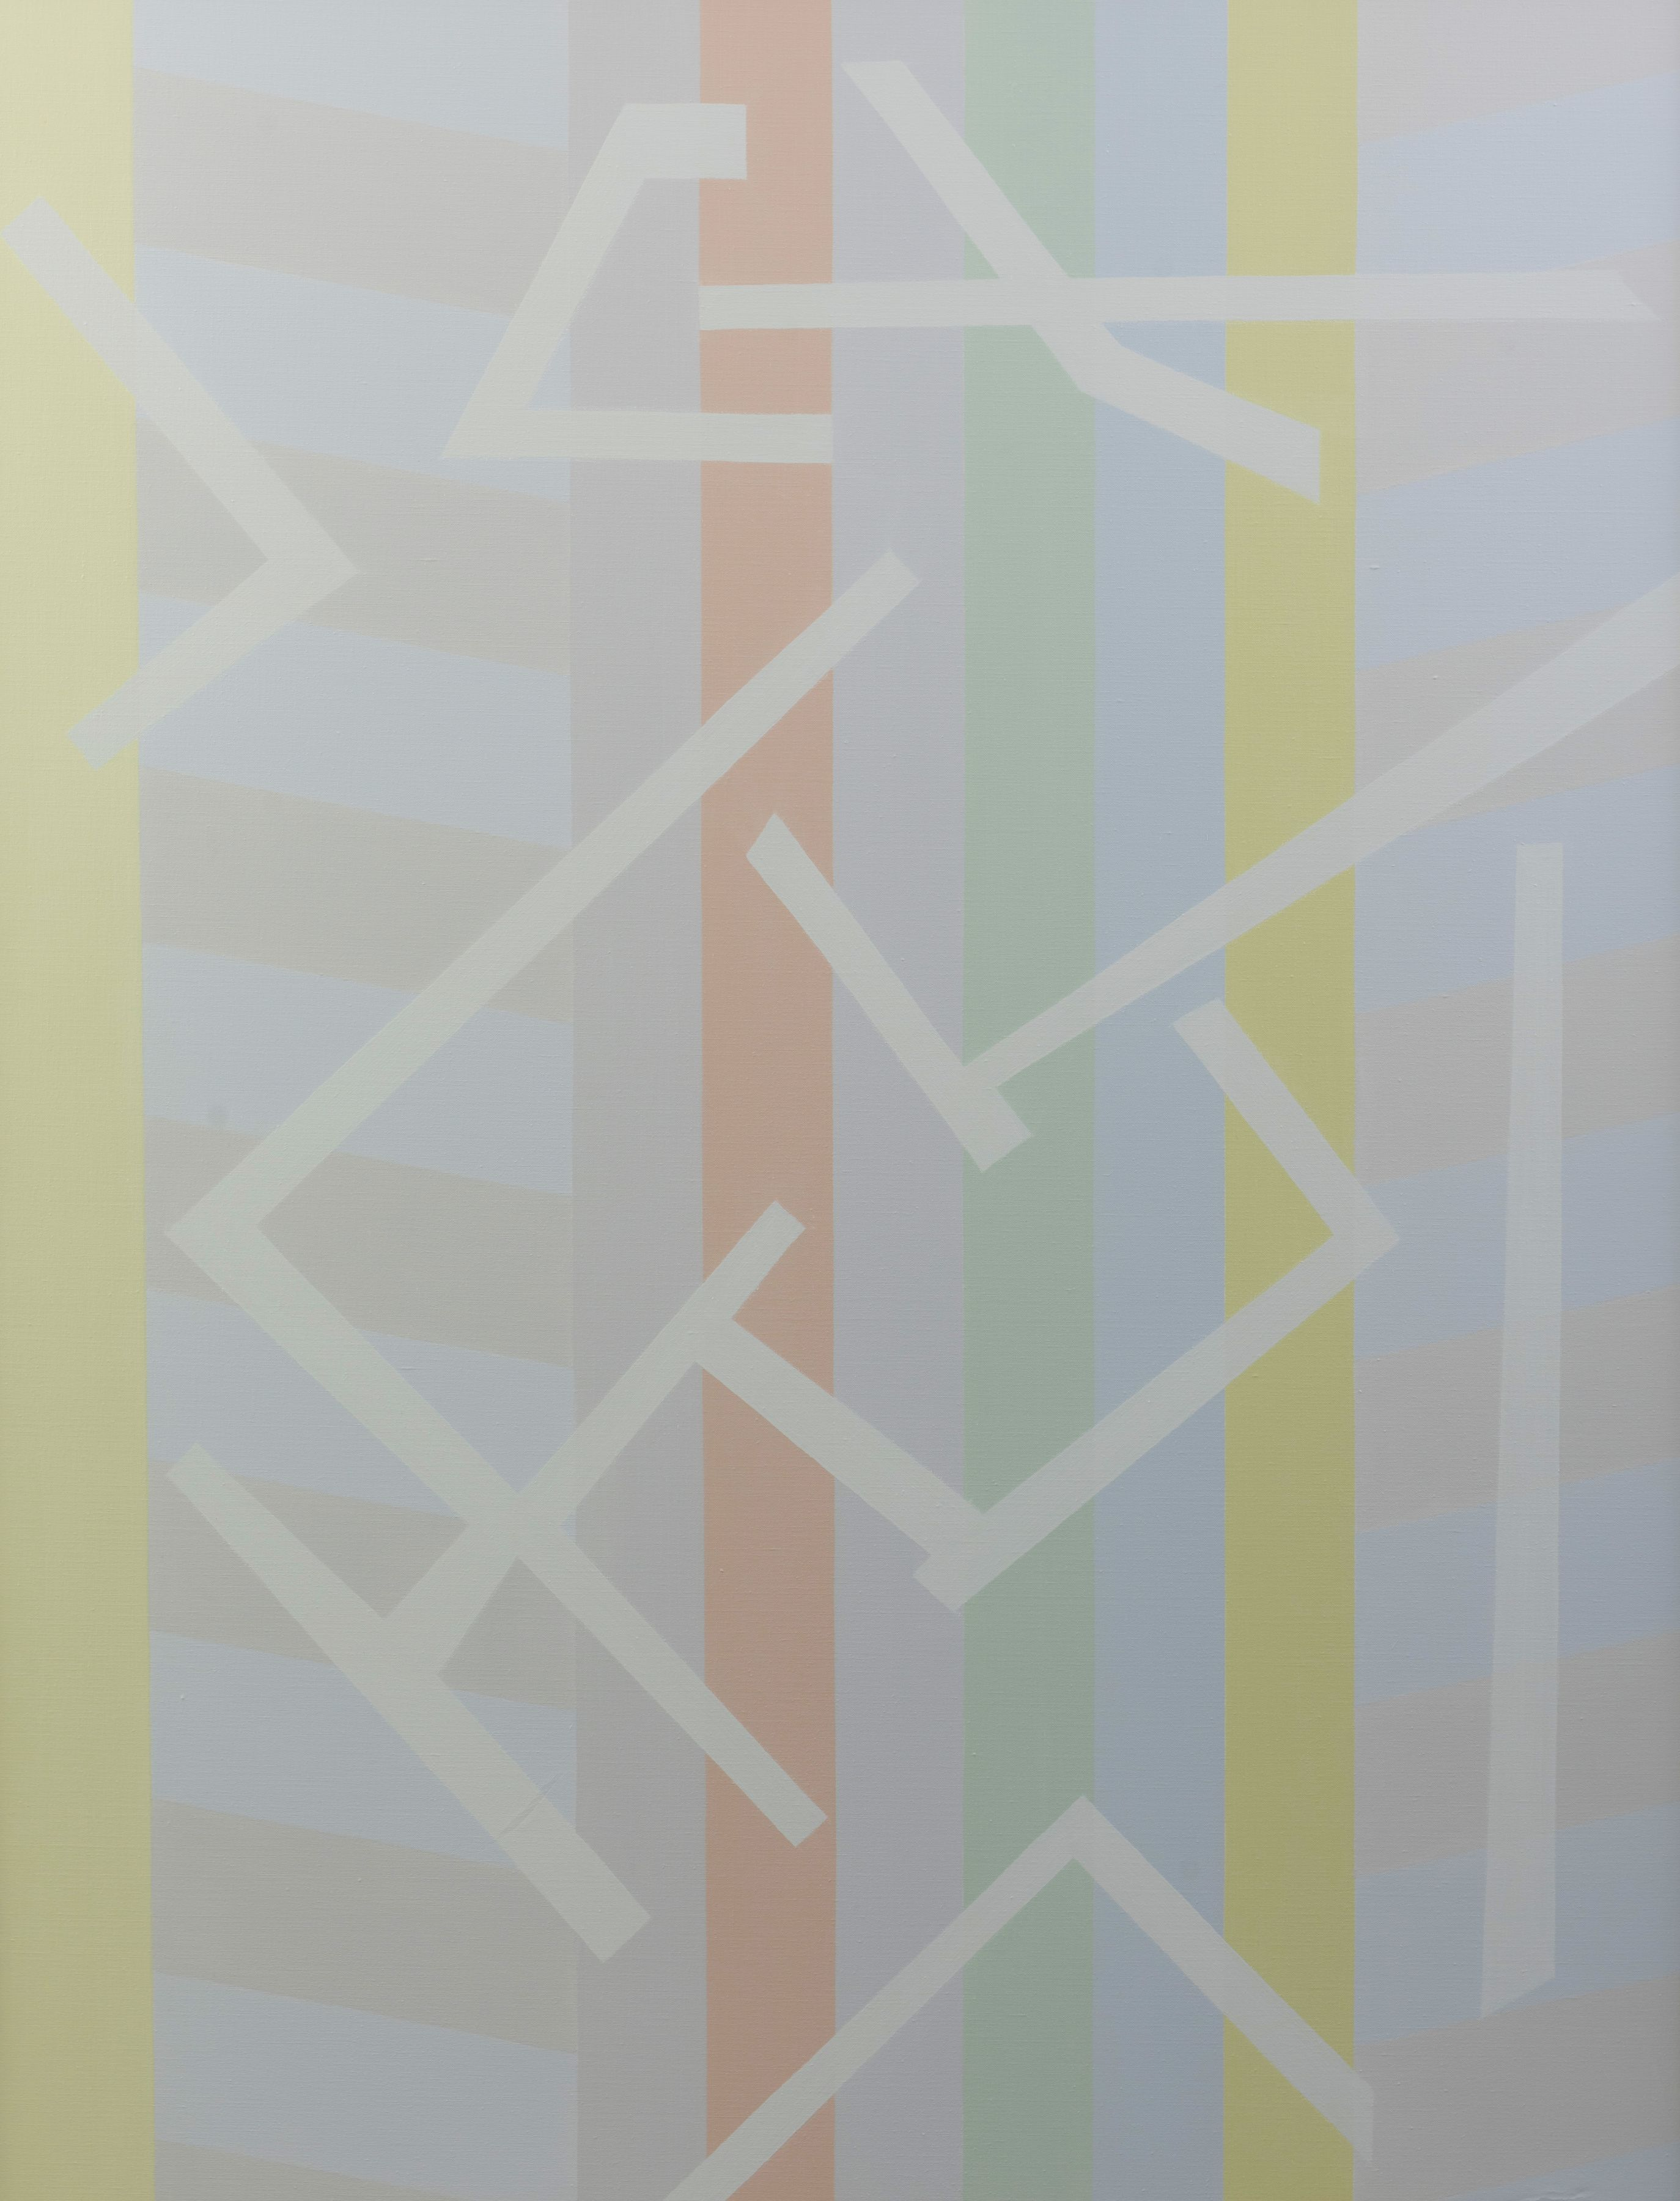 Felrath Hines, Hieroglyphic, 1985,  Oil on canvas, 40 x 52 inches. Soft composition with over lapping geometric shapes in grey and pastel colors. Felrath Hines worked to create universal visual idioms from a place of complex personal experience. His figurative and cubist-style artwork morphed into soft-edged organic abstracts as he grappled with hues in his chosen oil medium.